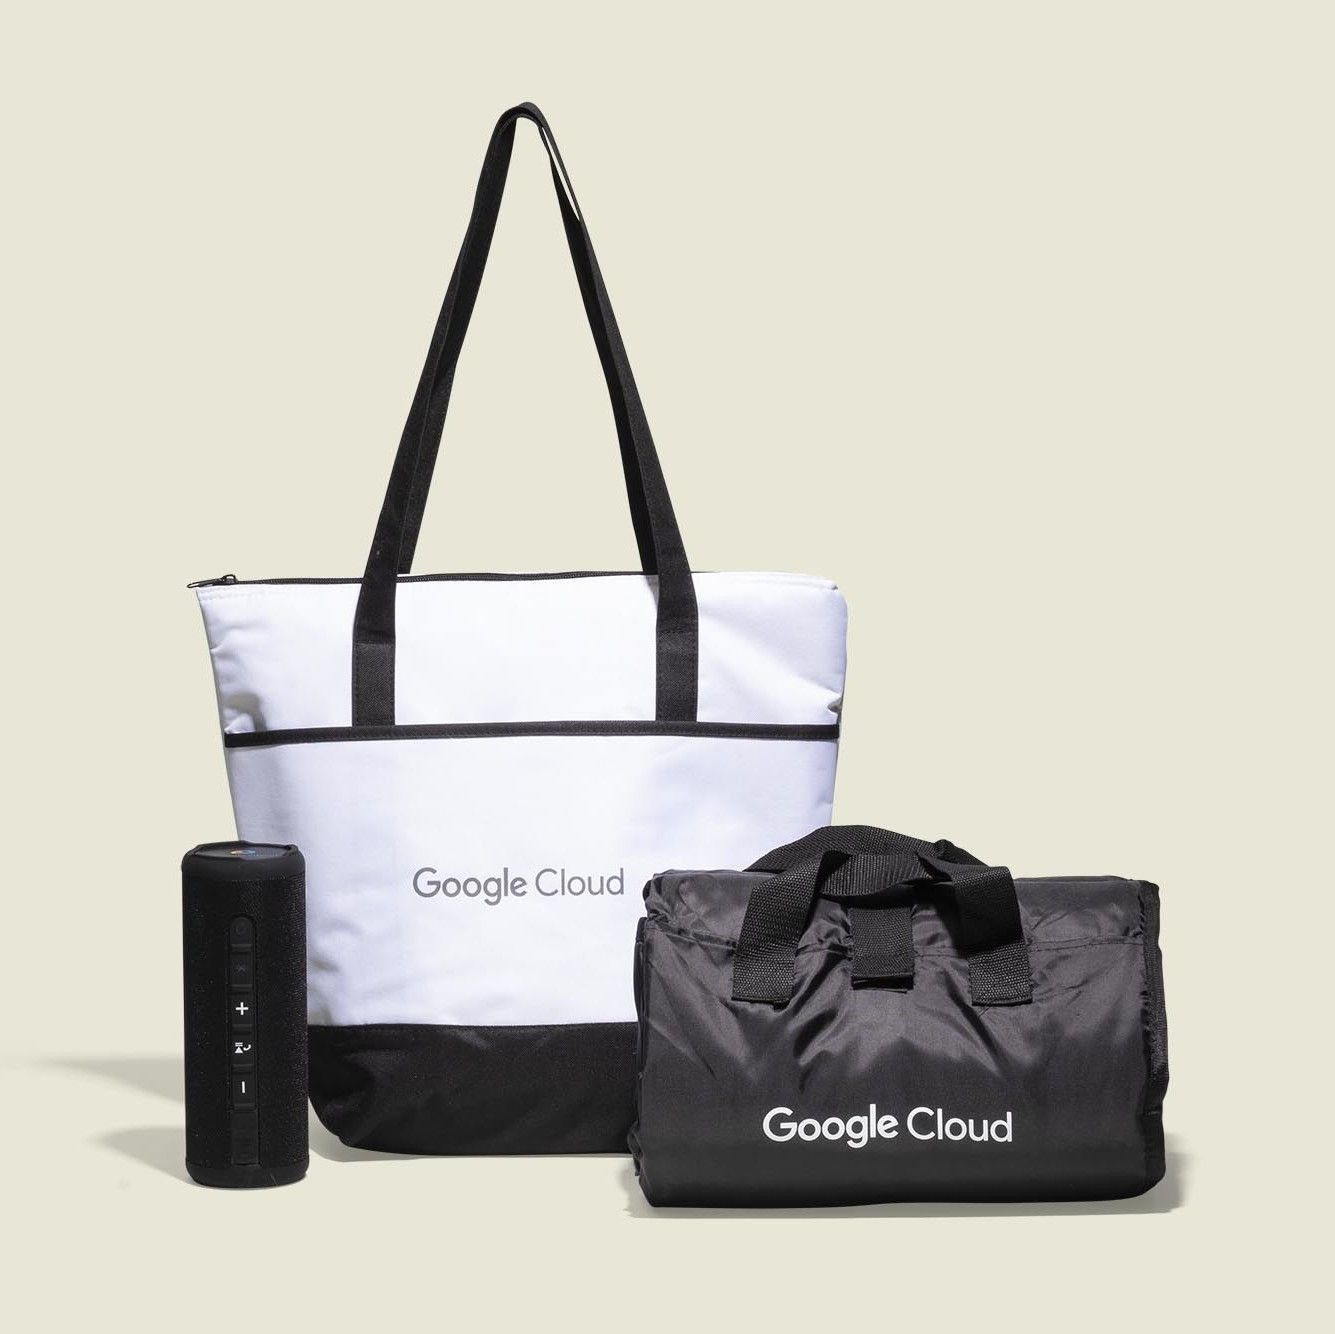 Tote and duffle bag with portable speaker